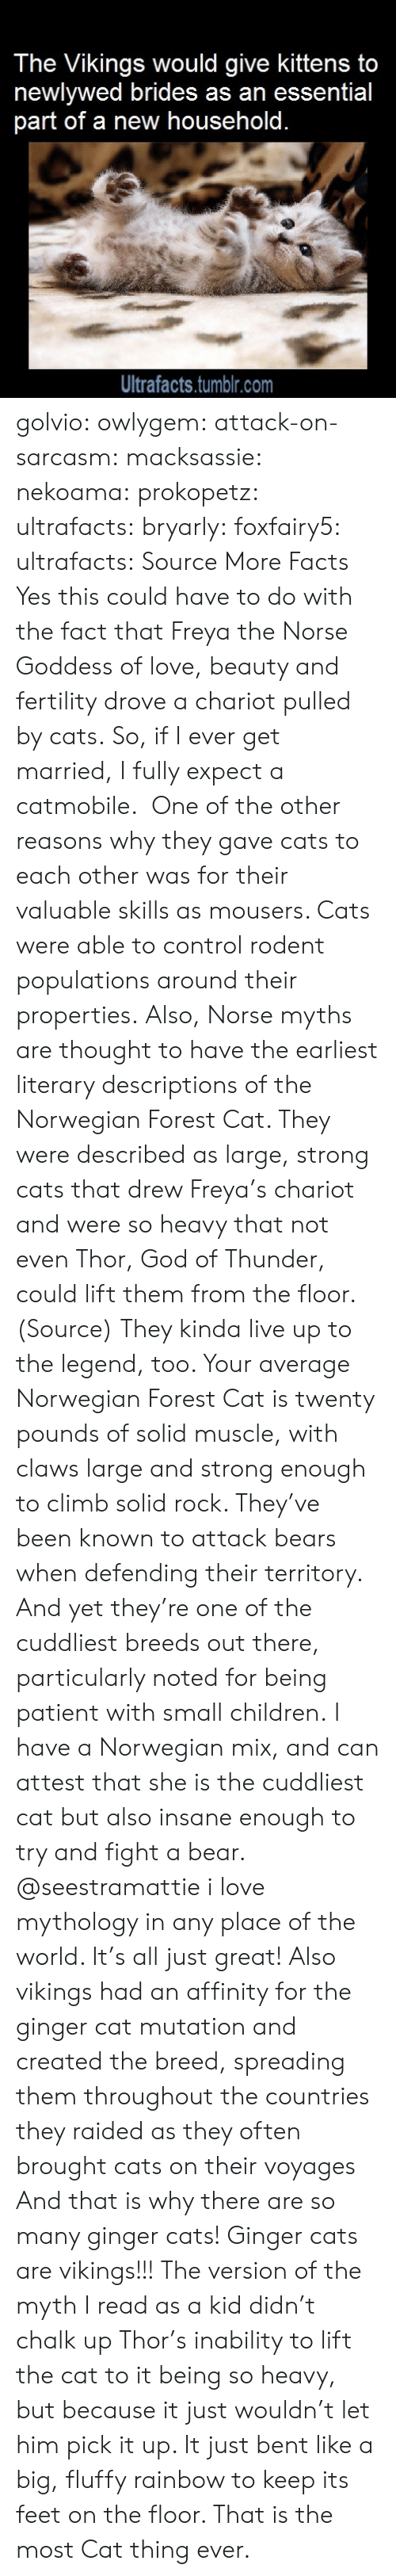 norwegian forest cat: The Vikings would give kittens to  newlywed brides as an essential  part of a new household.  Ultrafacts.tumblr.com golvio: owlygem:  attack-on-sarcasm:  macksassie:  nekoama:  prokopetz:  ultrafacts:  bryarly:  foxfairy5:  ultrafacts:  SourceMore Facts   Yes this could have to do with the fact that Freya the Norse Goddess of love, beauty and fertility drove a chariot pulled by cats.  So, if I ever get married, I fully expect a catmobile.   One of the other reasons why they gave cats to each other was for their valuable skills as mousers. Cats were able to control rodent populations around their properties. Also, Norse myths are thought to have the earliest literary descriptions of the Norwegian Forest Cat. They were described as large, strong cats that drew Freya's chariot and were so heavy that not even Thor, God of Thunder, could lift them from the floor. (Source)  They kinda live up to the legend, too. Your average Norwegian Forest Cat is twenty pounds of solid muscle, with claws large and strong enough to climb solid rock. They've been known to attack bears when defending their territory. And yet they're one of the cuddliest breeds out there, particularly noted for being patient with small children.  I have a Norwegian mix, and can attest that she is the cuddliest cat but also insane enough to try and fight a bear.   @seestramattie  i love mythology in any place of the world. It's all just great!  Also vikings had an affinity for the ginger cat mutation and created the breed, spreading them throughout the countries they raided as they often brought cats on their voyages And that is why there are so many ginger cats! Ginger cats are vikings!!!  The version of the myth I read as a kid didn't chalk up Thor's inability to lift the cat to it being so heavy, but because it just wouldn't let him pick it up. It just bent like a big, fluffy rainbow to keep its feet on the floor. That is the most Cat thing ever.